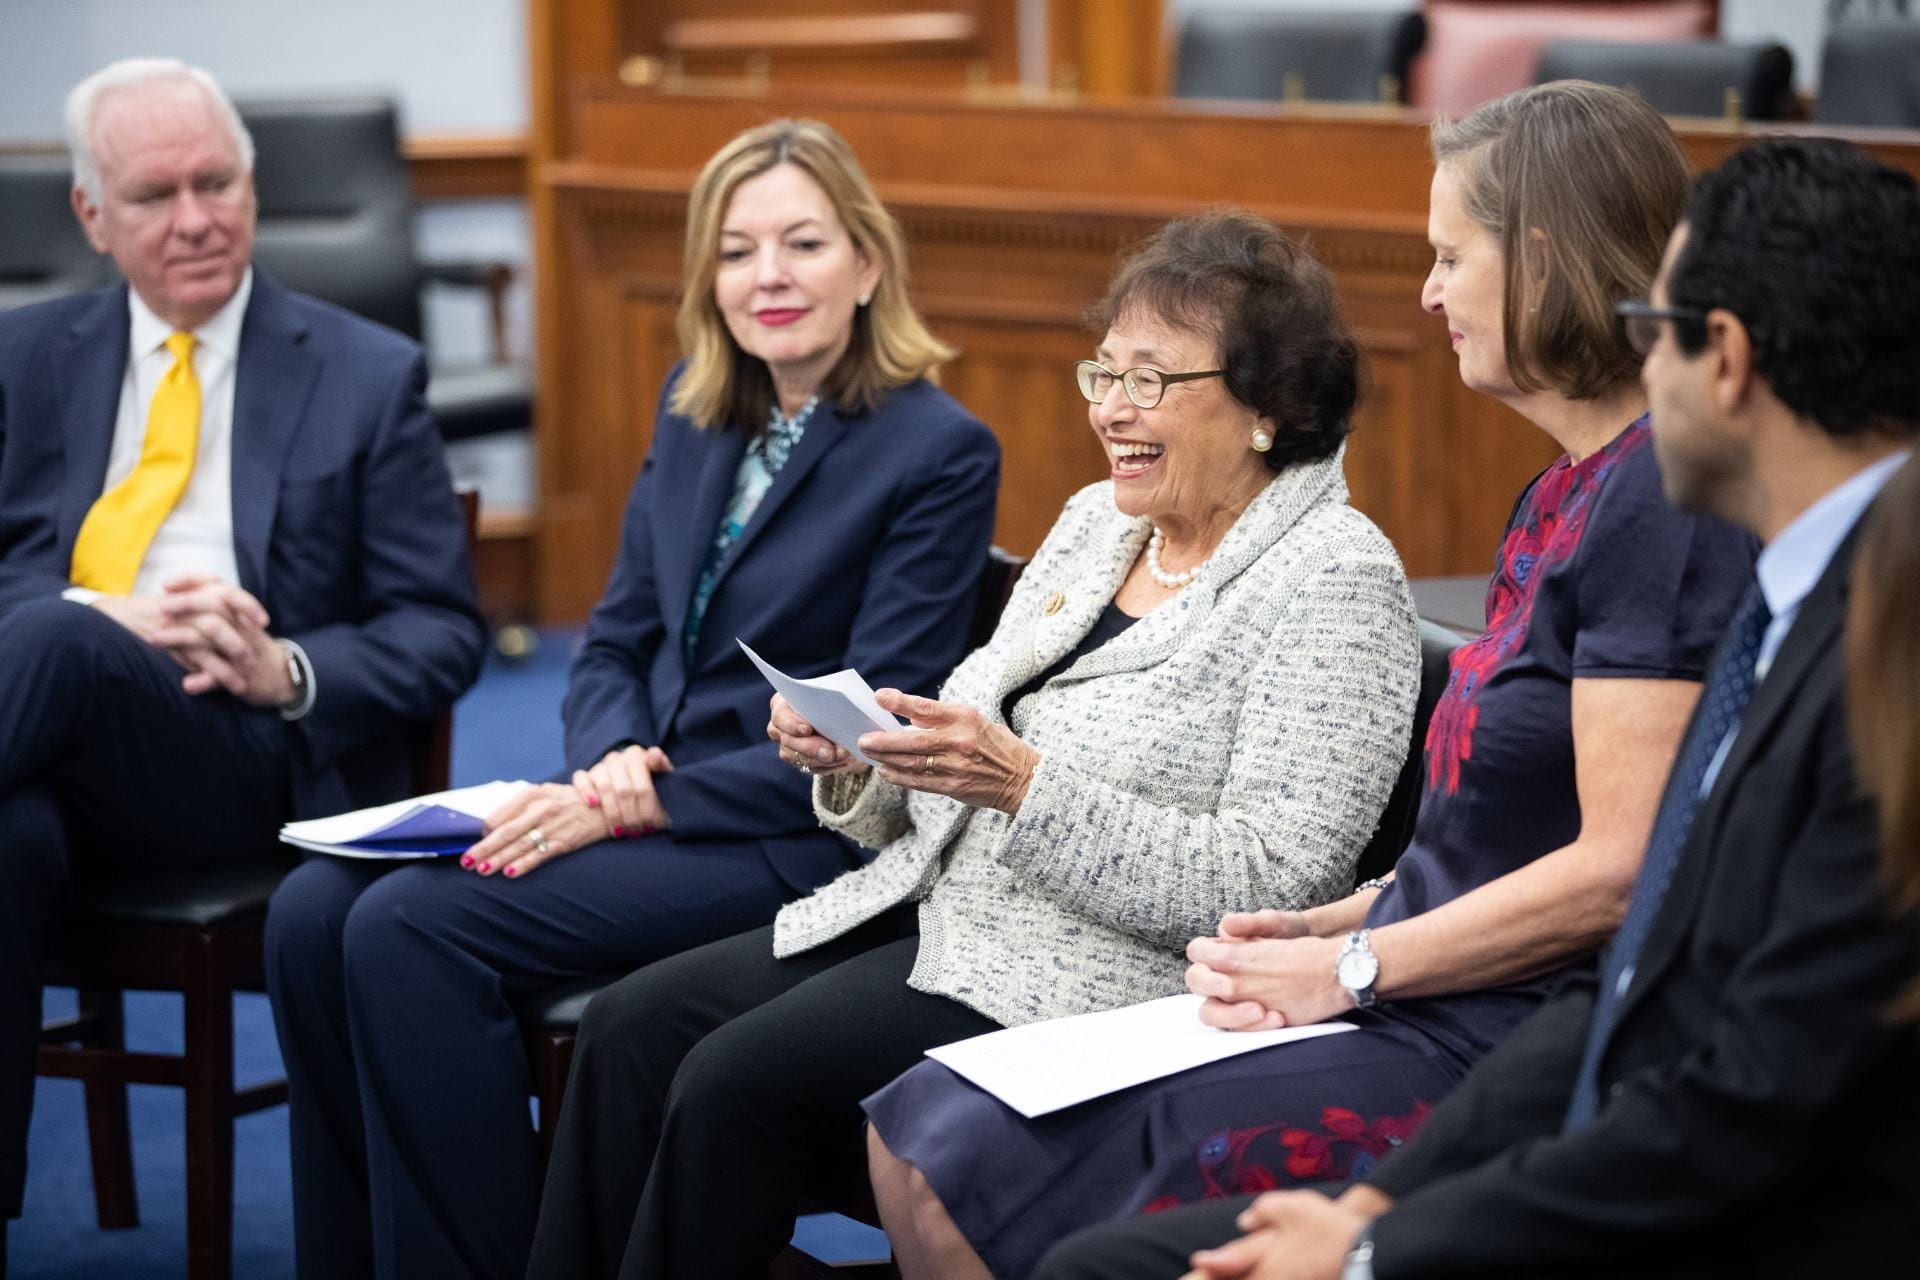 Nita Lowey speaking at her award ceremony with four others sitting beside her